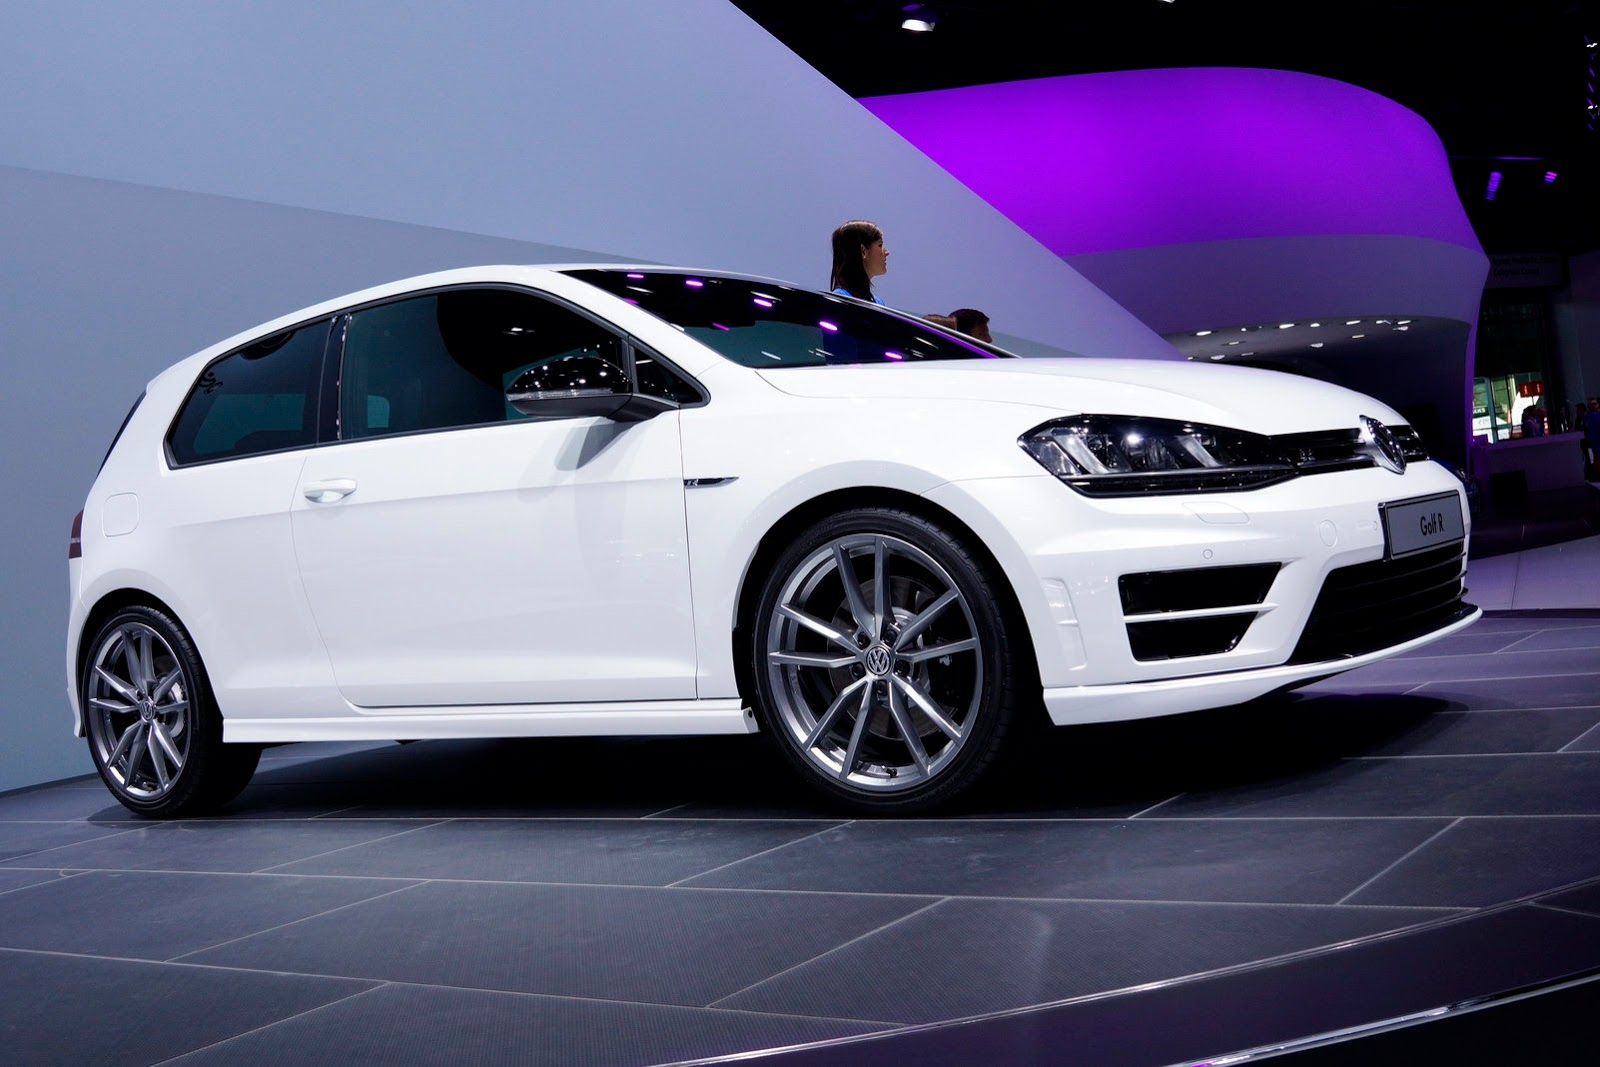 volkswagen golf r au salon de francfort photos blog auto. Black Bedroom Furniture Sets. Home Design Ideas